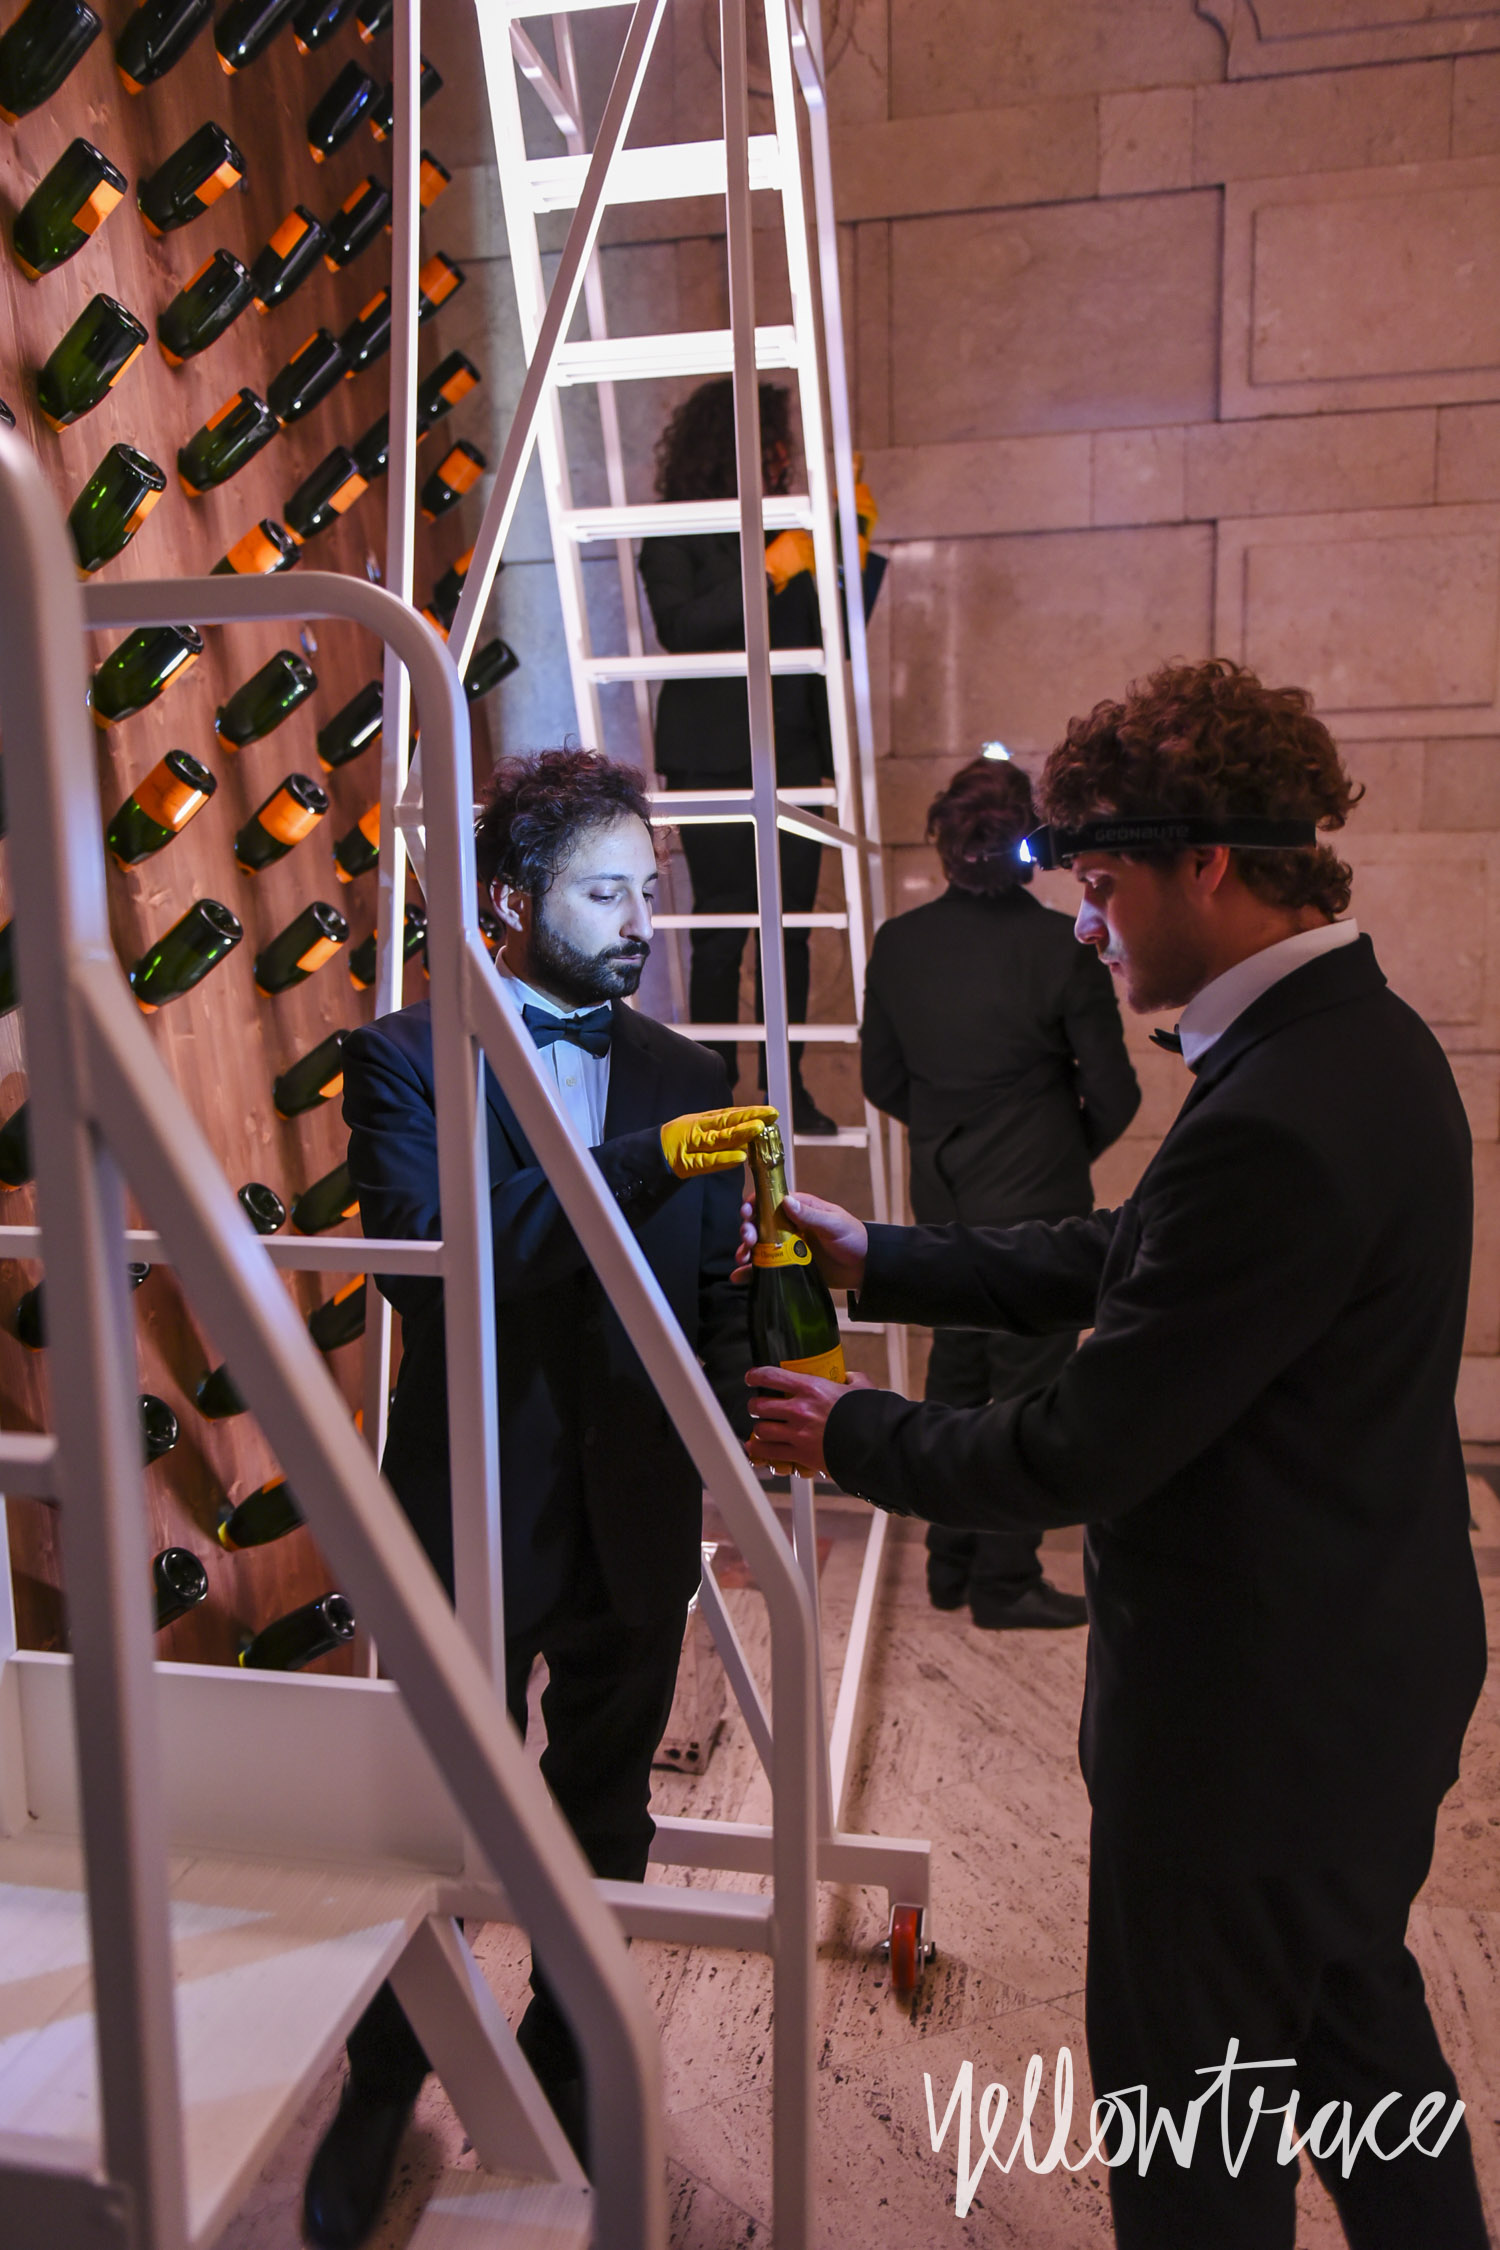 BEYOND: The Veuve Clicquot Journey by Fabrica, Milan Design Week 2016, Photo © Nick Hughes | #MILANTRACE2016